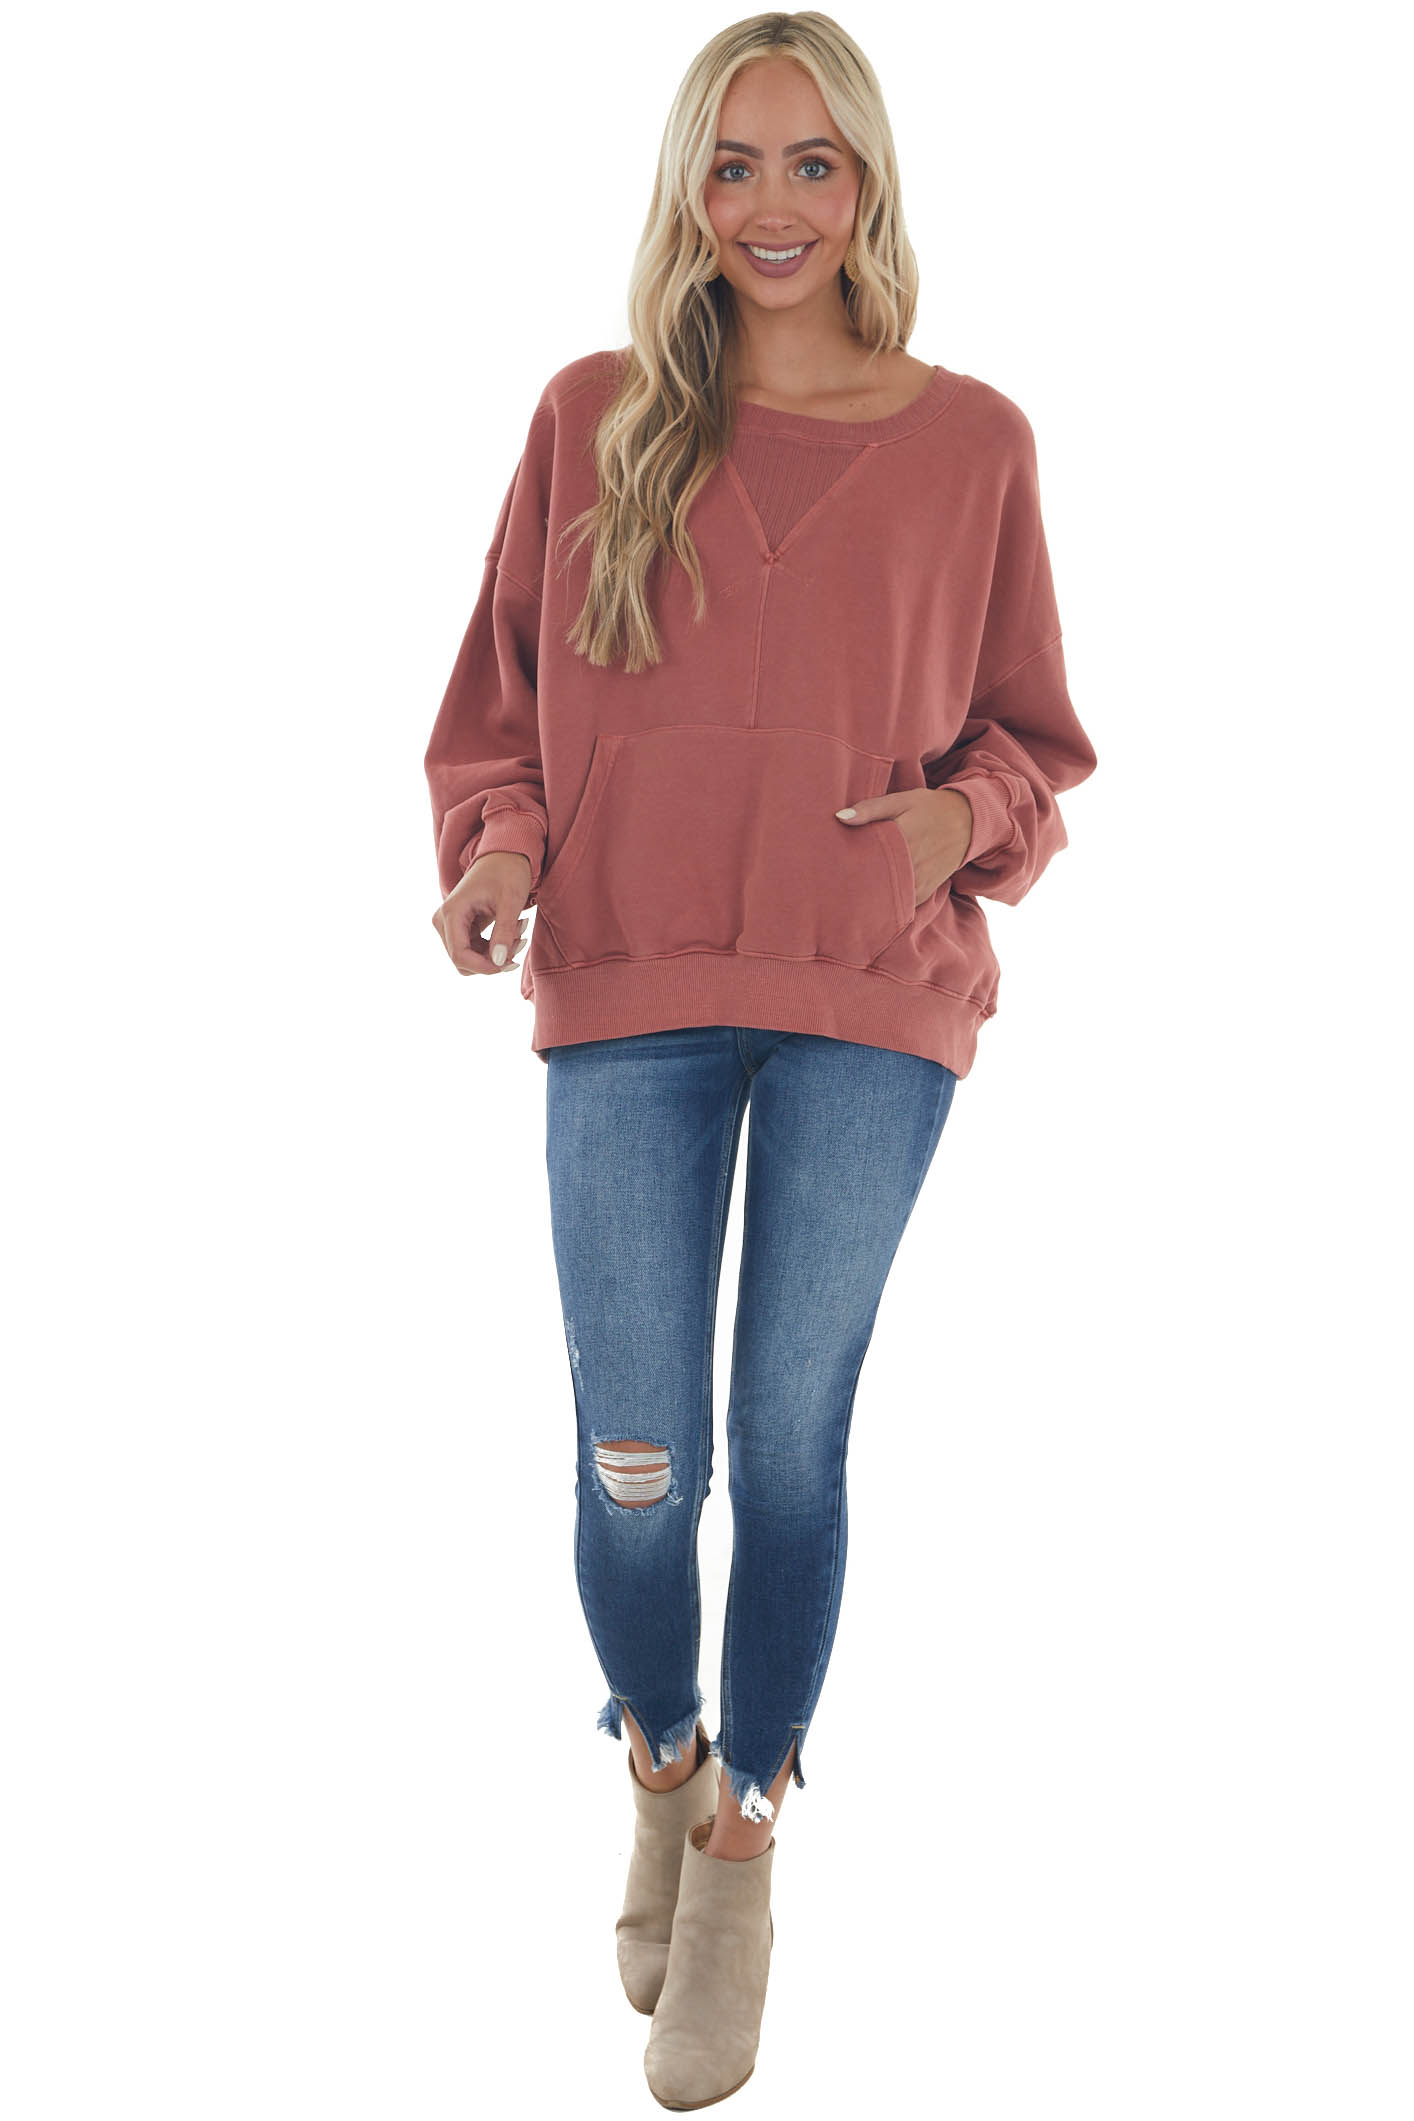 Marsala Ribbed Contrast Sweatshirt with Pouch